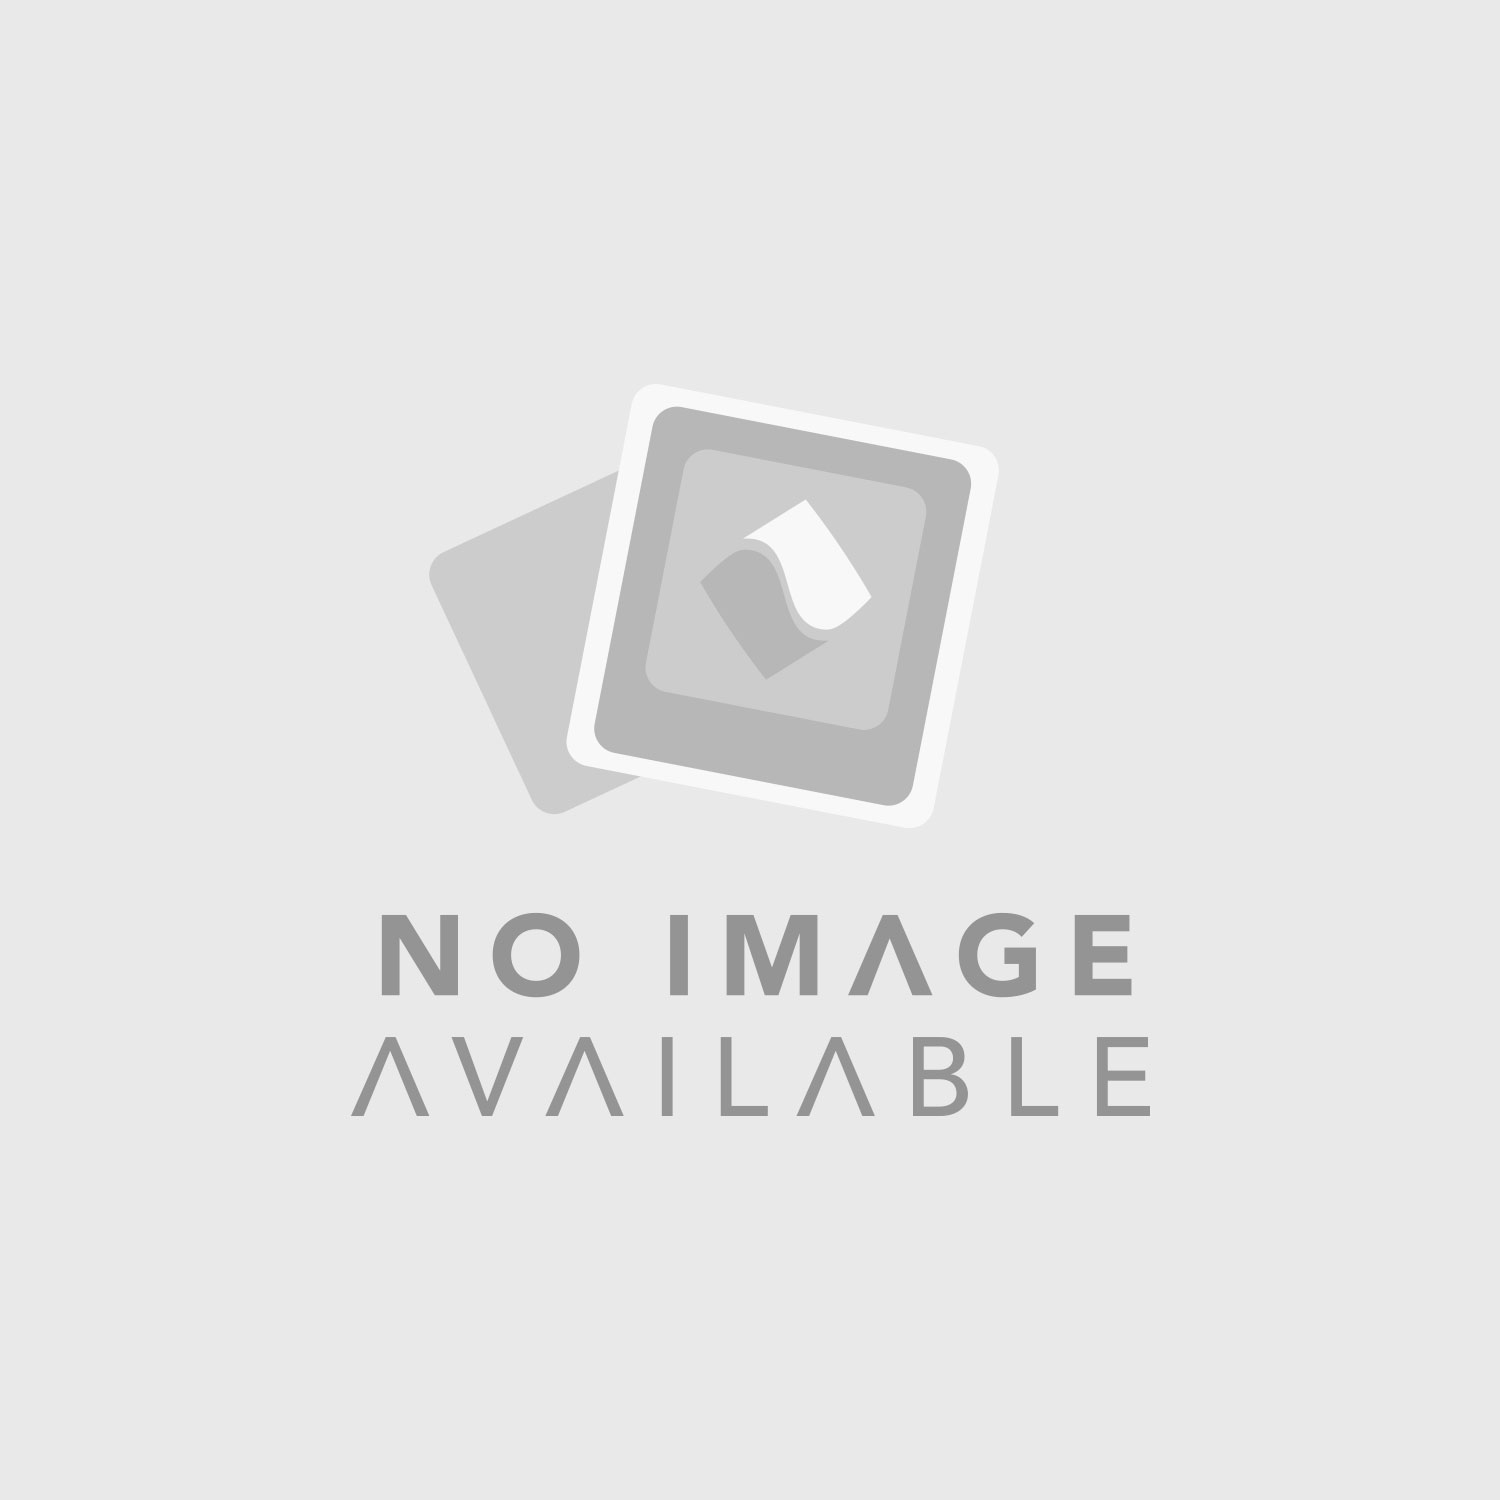 Pro Intercom AD950 Telephone Interface